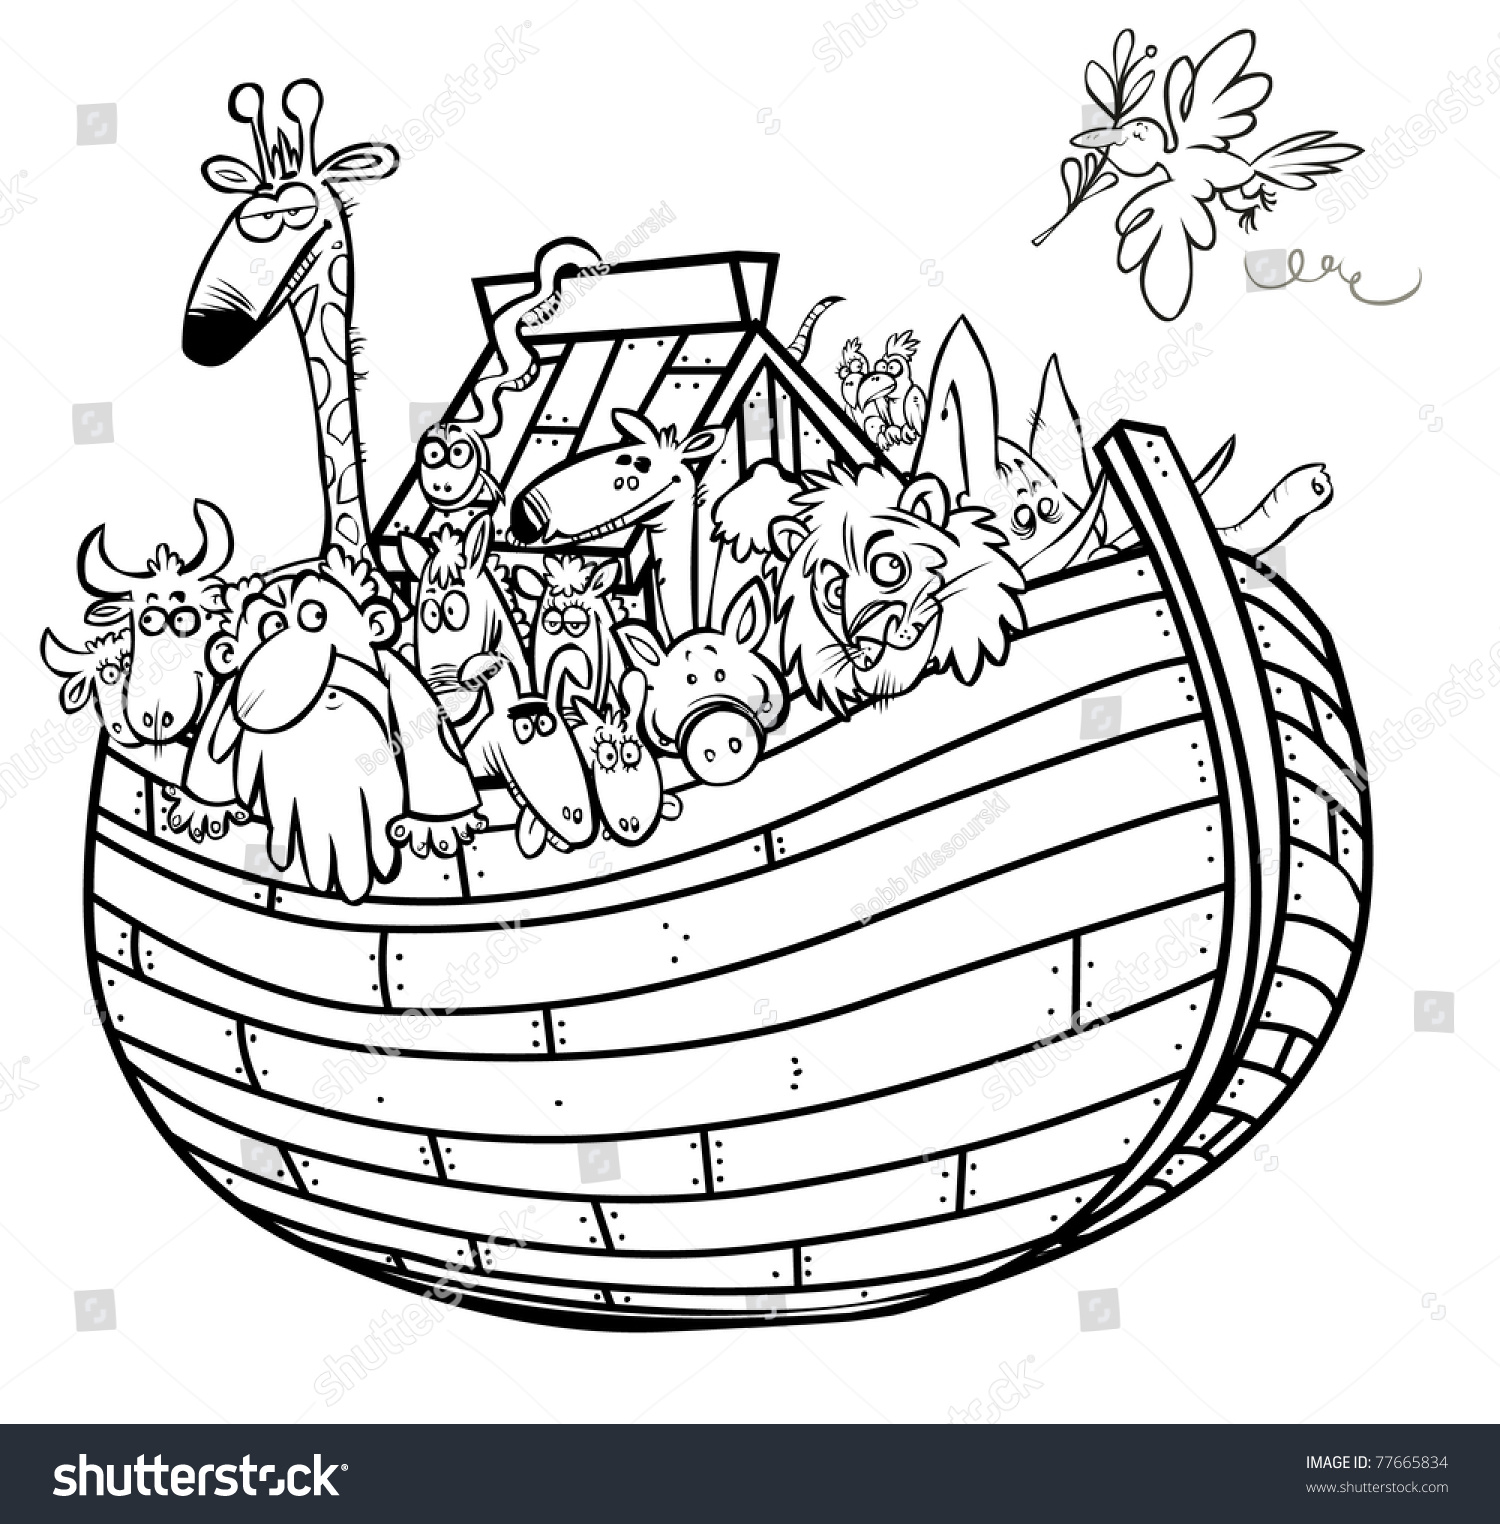 royalty free noah u0027s ark outline cartoon 77665834 stock photo